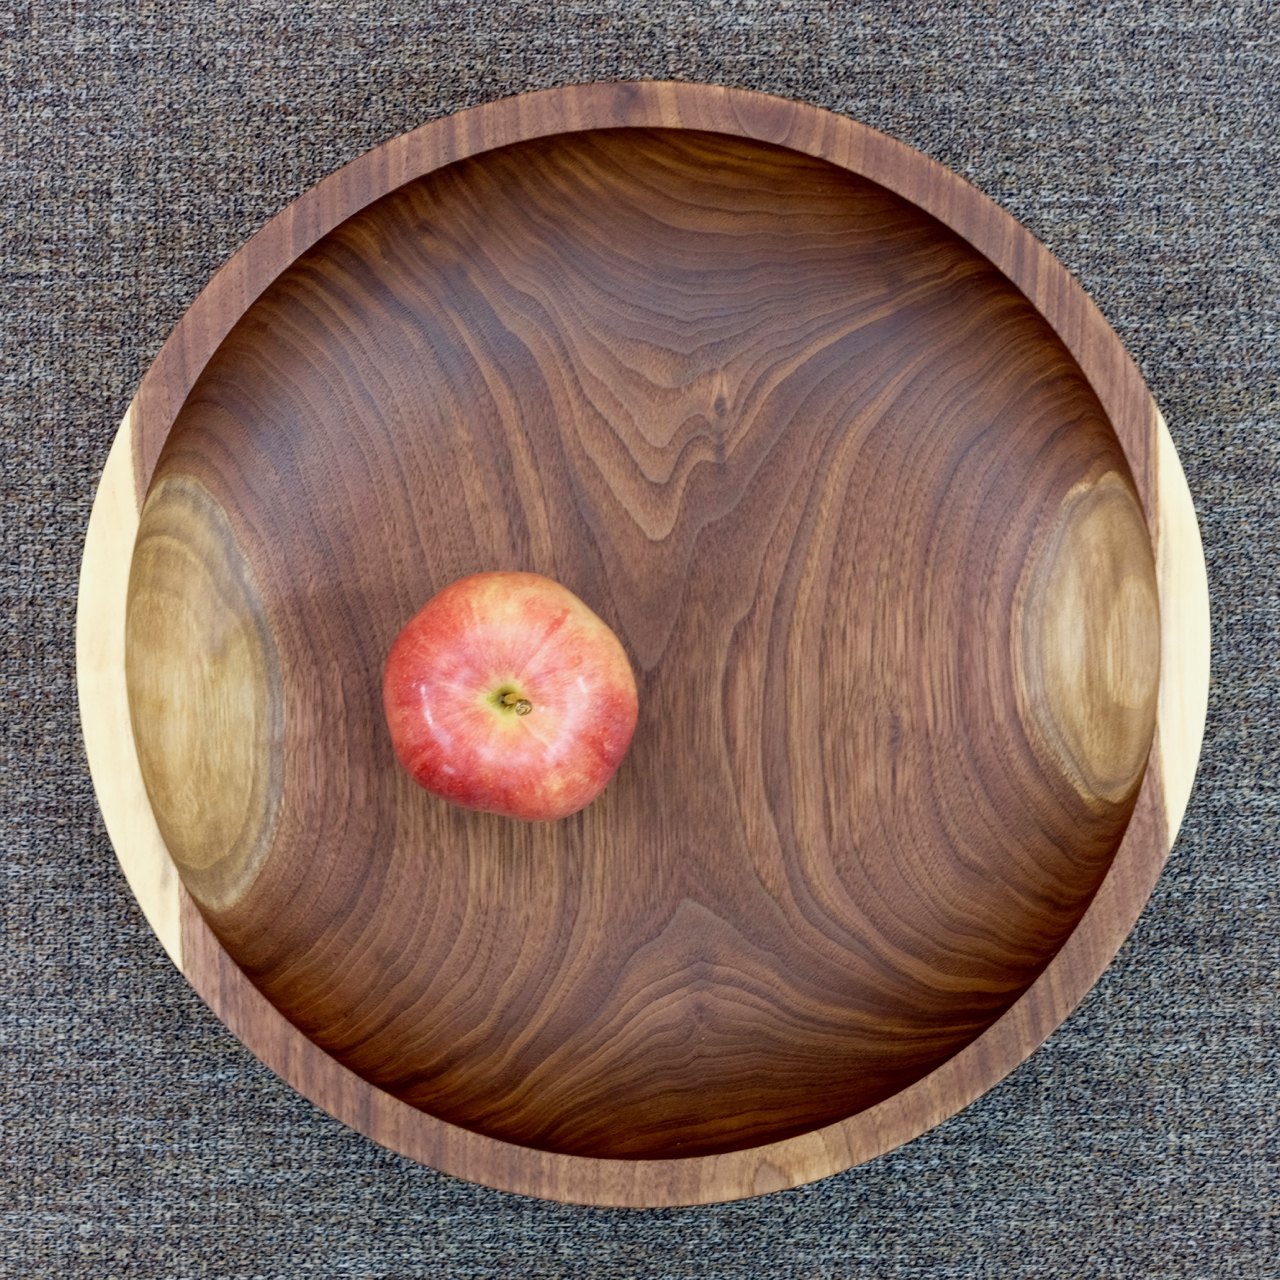 Black walnut bowl with apple